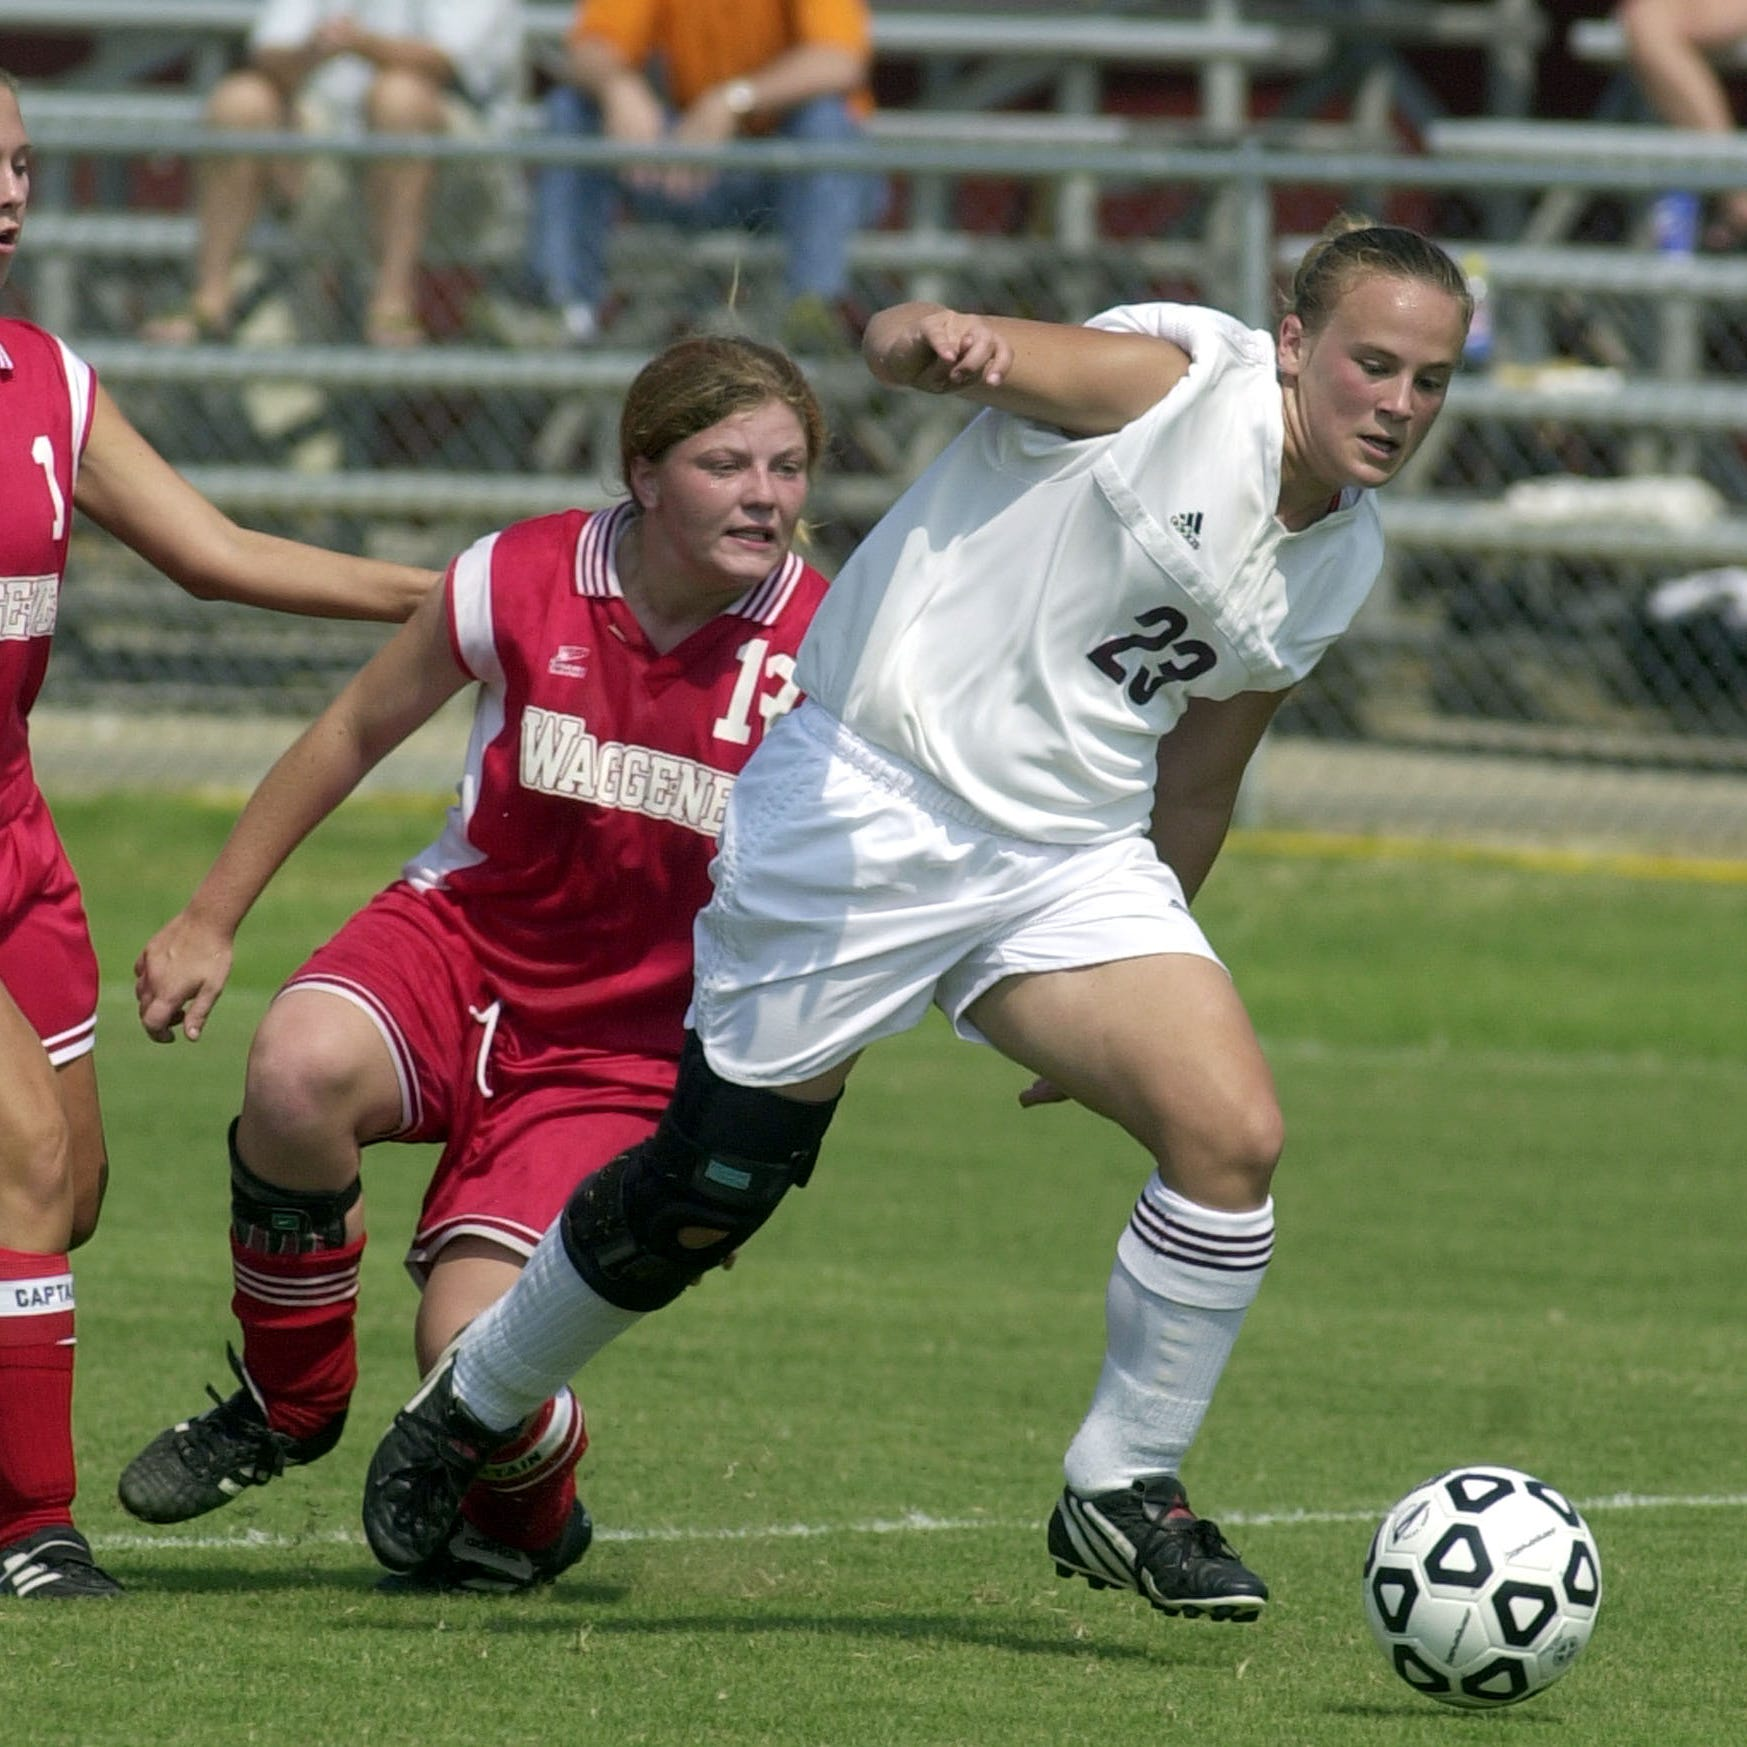 Toughness made Hall of Fame inductee Katie Overton stand out on soccer field